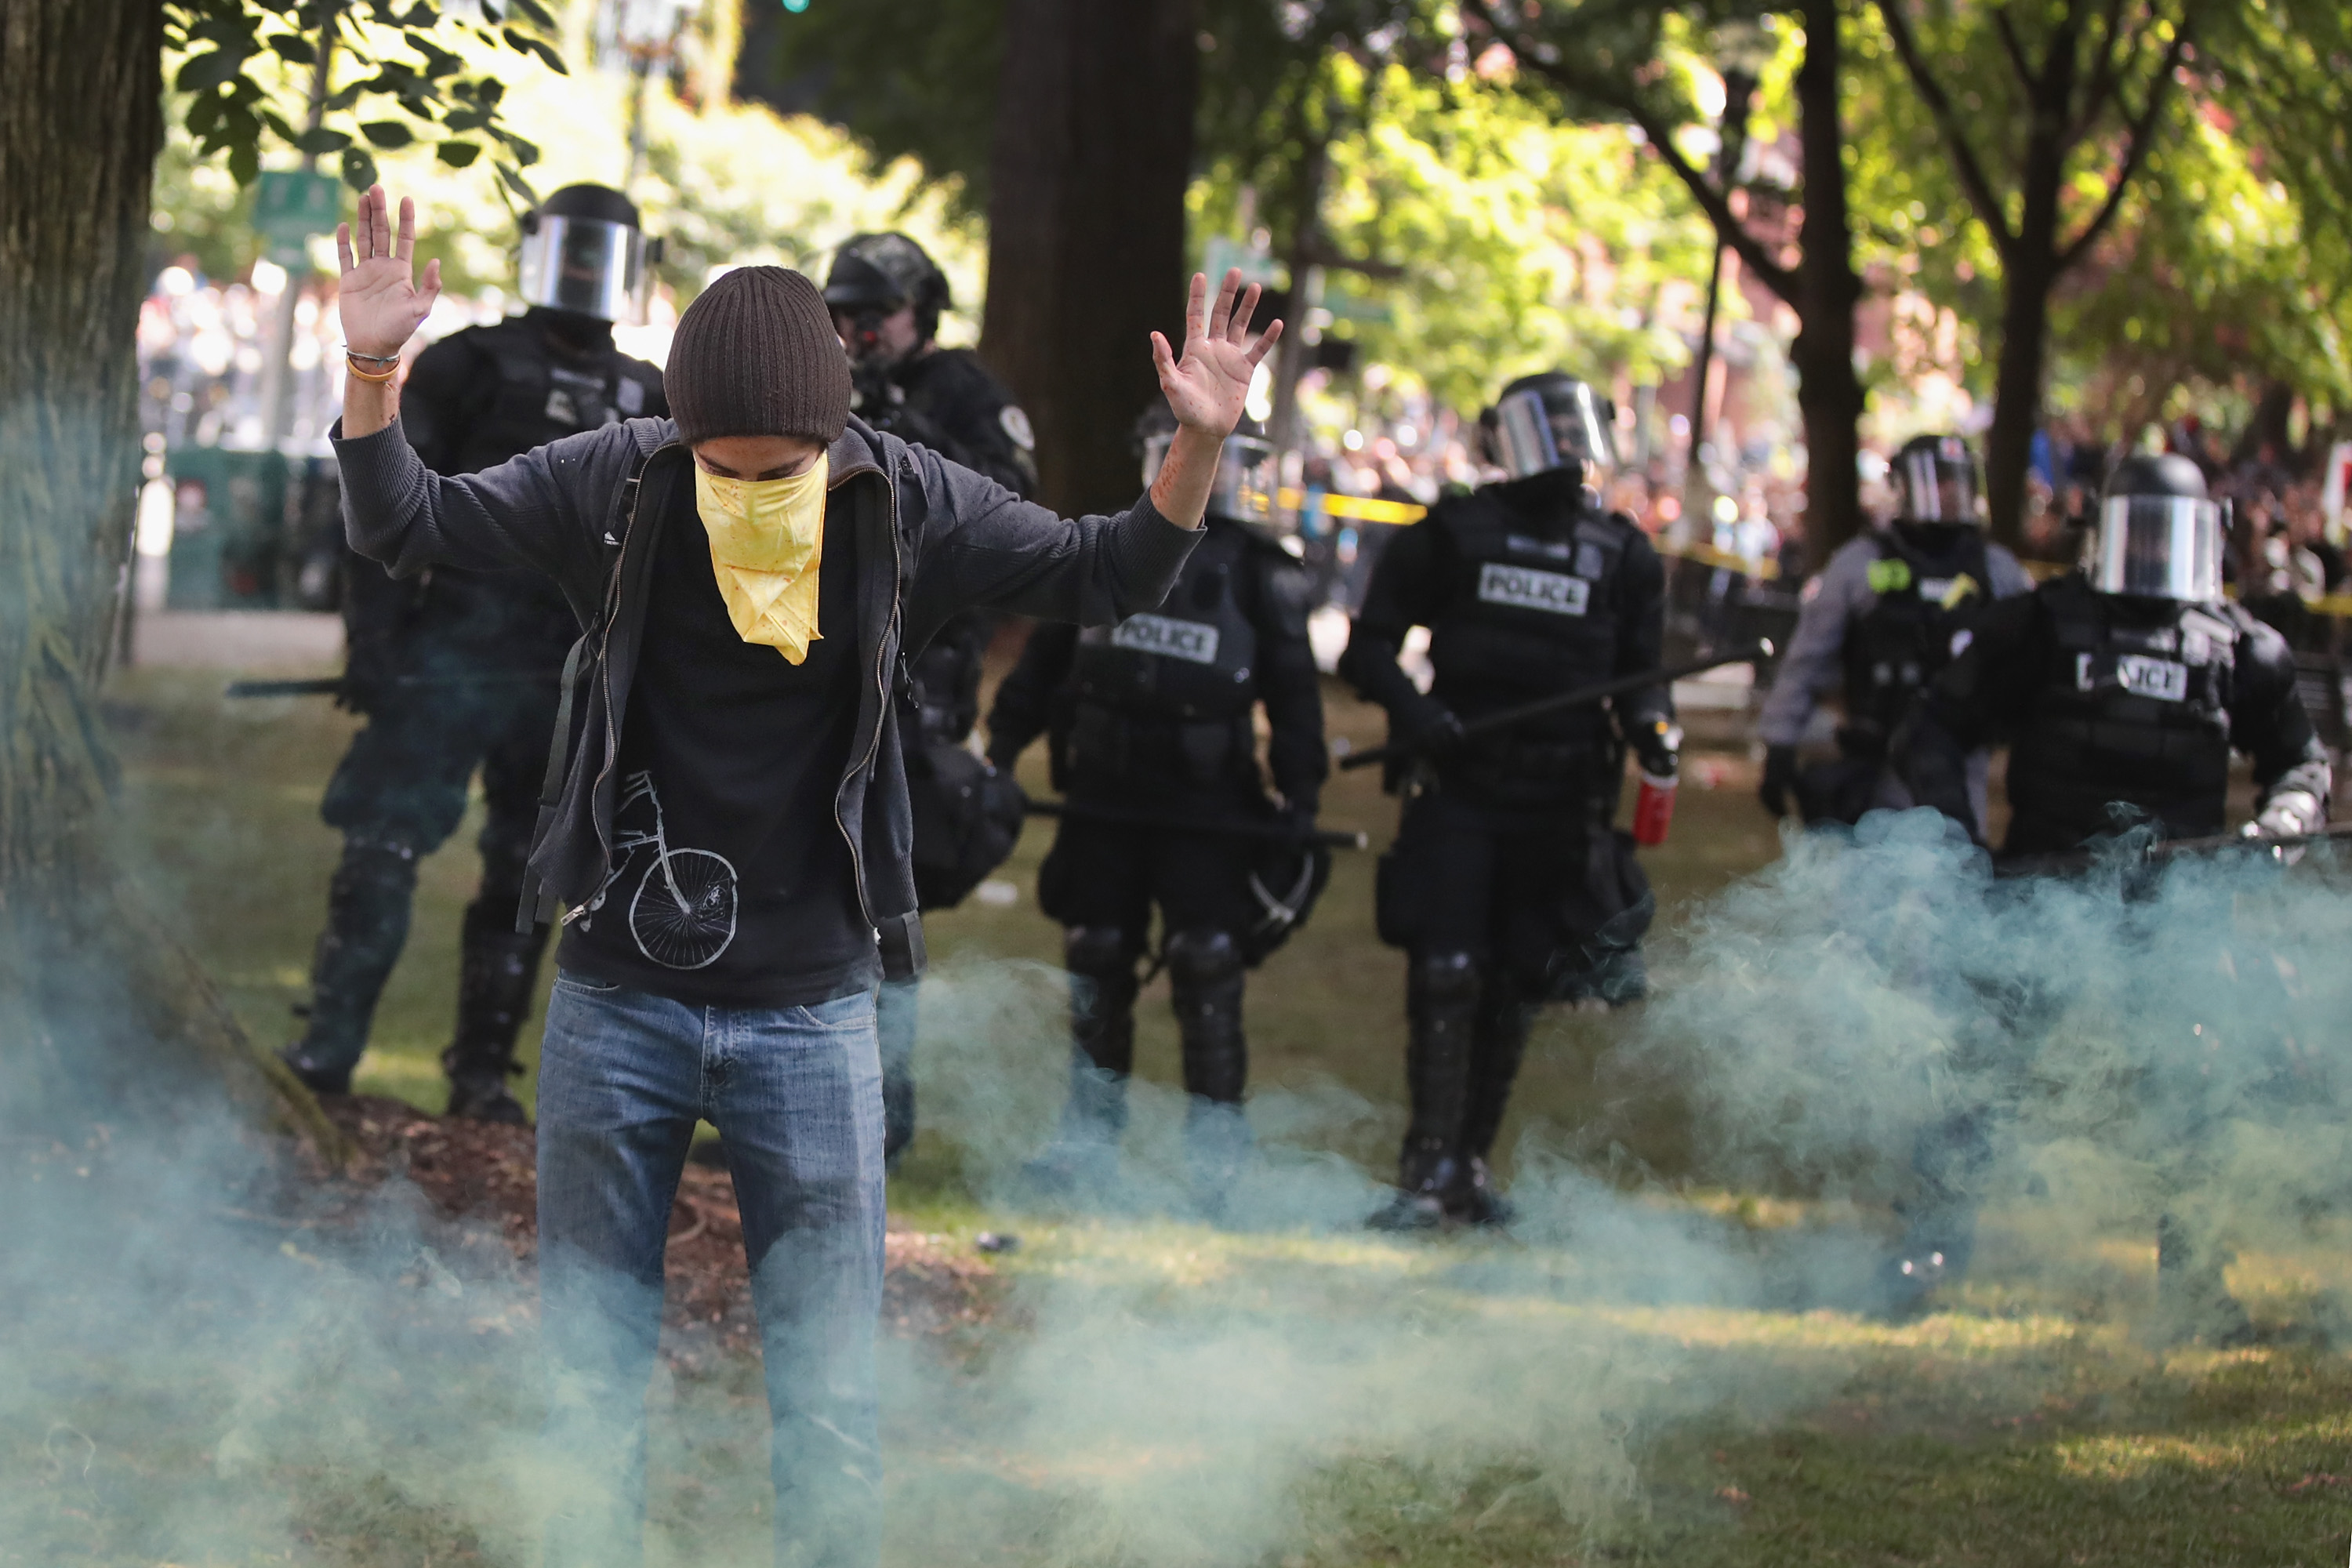 "PORTLAND, OR - JUNE 04:  Antifascist demonstrators confront police during a protest on June 4, 2017 in Portland, Oregon. A protest dubbed ""Trump Free Speech"" by organizers was met by a large contingent of counter-demonstrators who viewed the protest as a promotion racism. Many residents of Portland are still coming to terms with the recent violent attack on the city's MAX train line when Ricky Best, 53, and Taliesin Namkai-Meche, 23, were stabbed to death and Micah Fletcher,21, was severely injured after they tried to protect two teenage girls, one of whom was wearing a hijab, from being harassed with racial taunts by suspect Jeremy Christian.  (Photo by Scott Olson/Getty Images)"